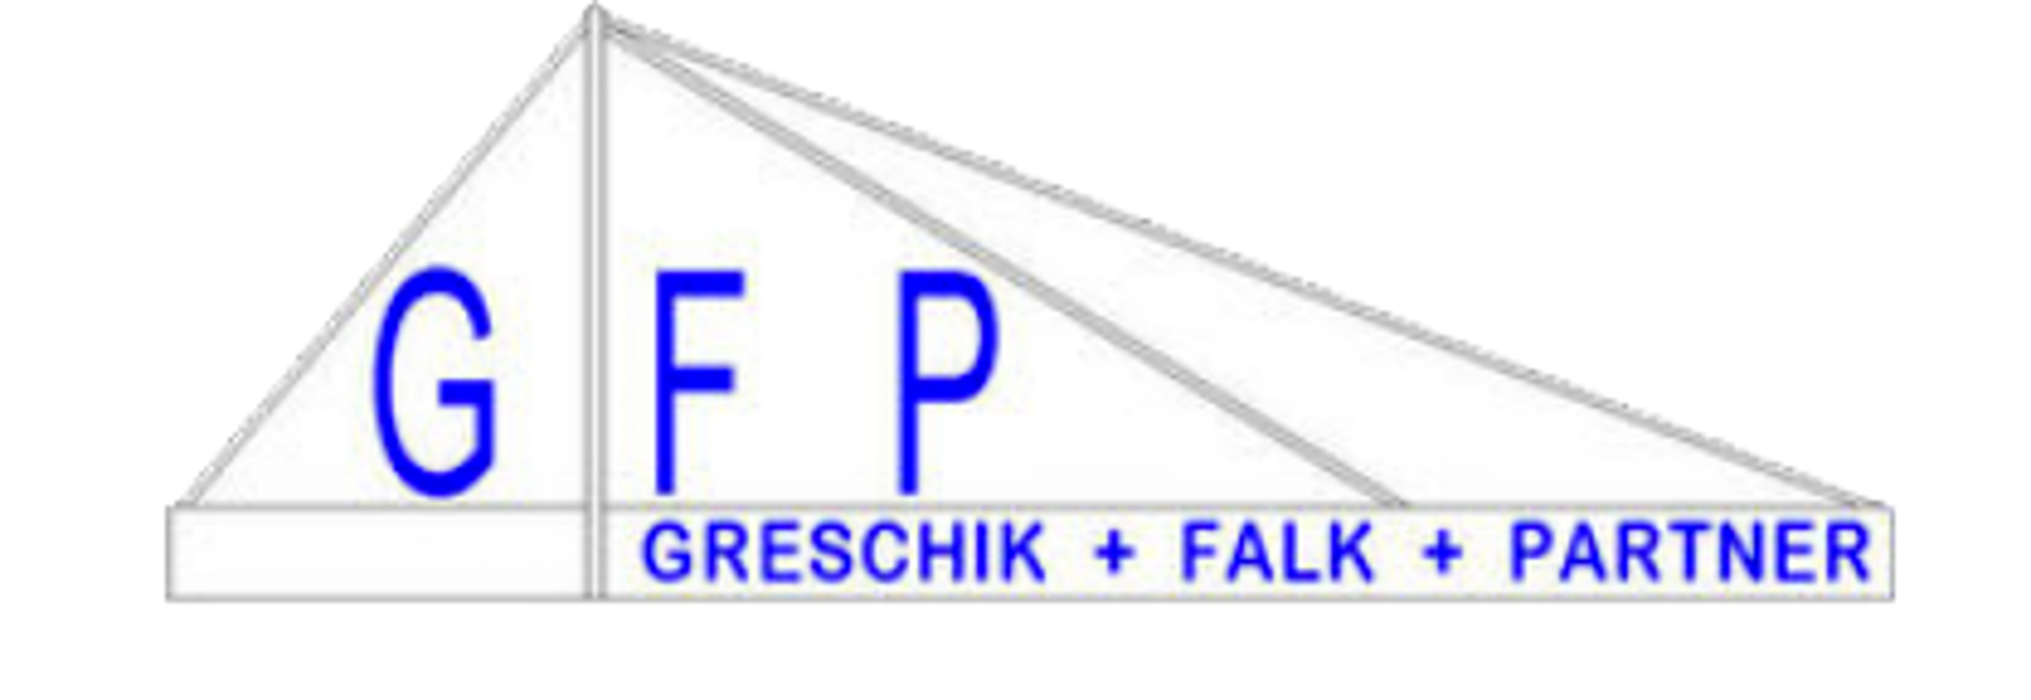 Bild zu Greschik + Falk + Partner in Berlin